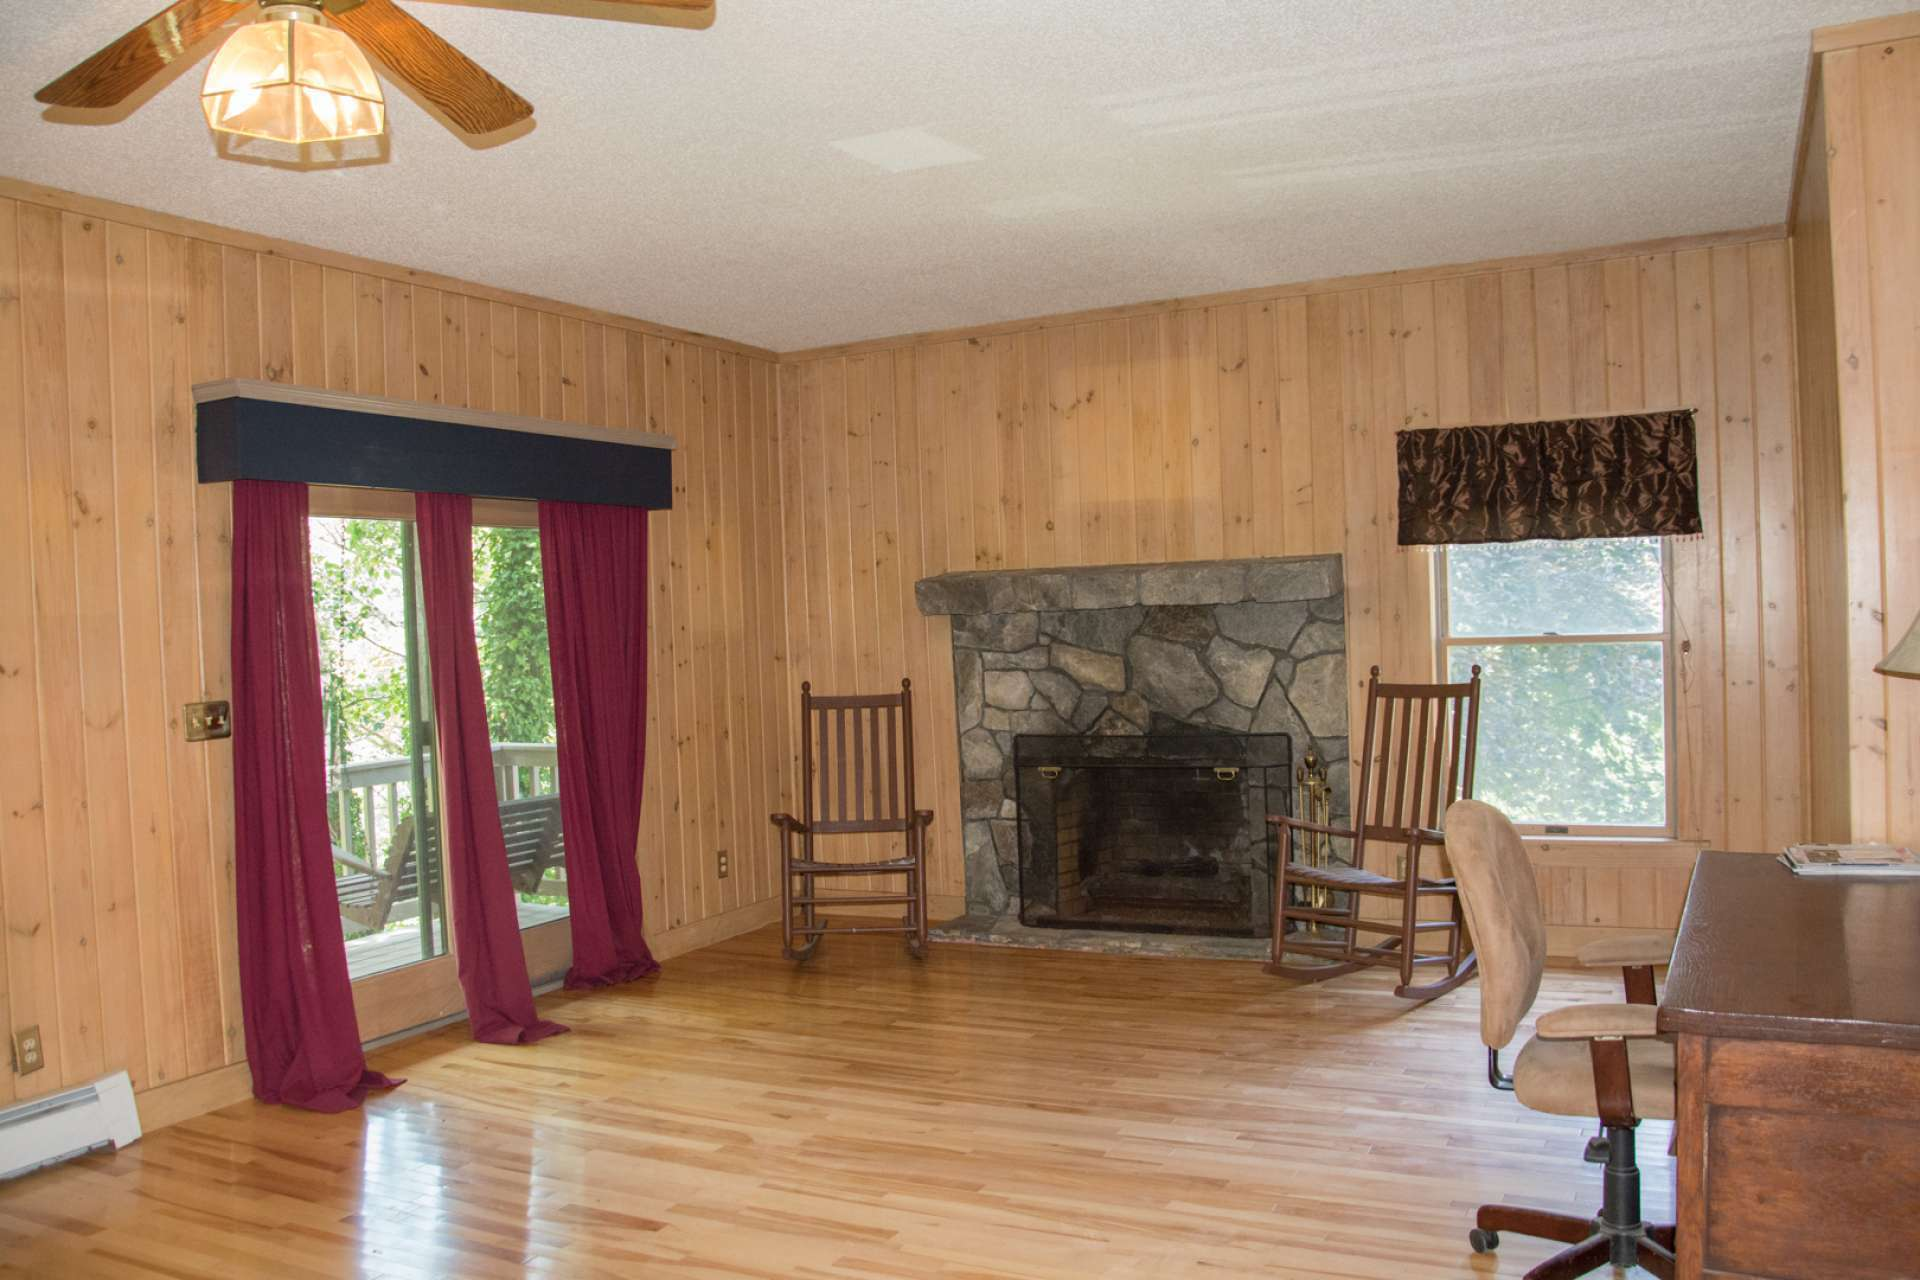 The upper level is truly a private retreat where you can enjoy the added warmth of the fireplace on cool winter evenings, or the fresh air of the private deck in warmer months.